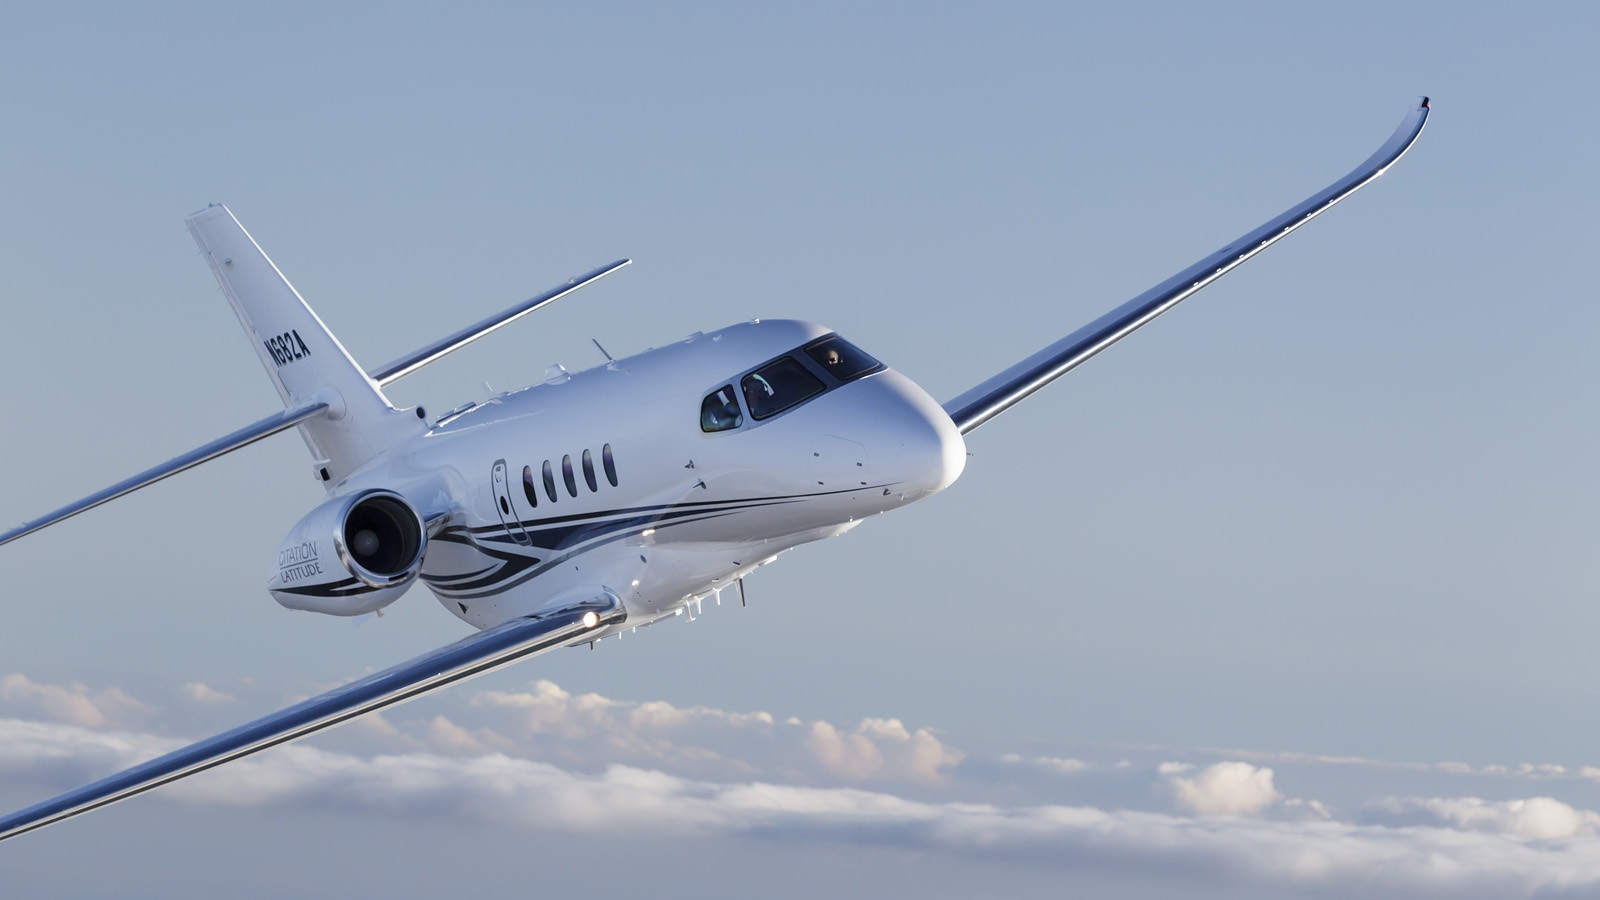 VistaJet support governments and medical organizations